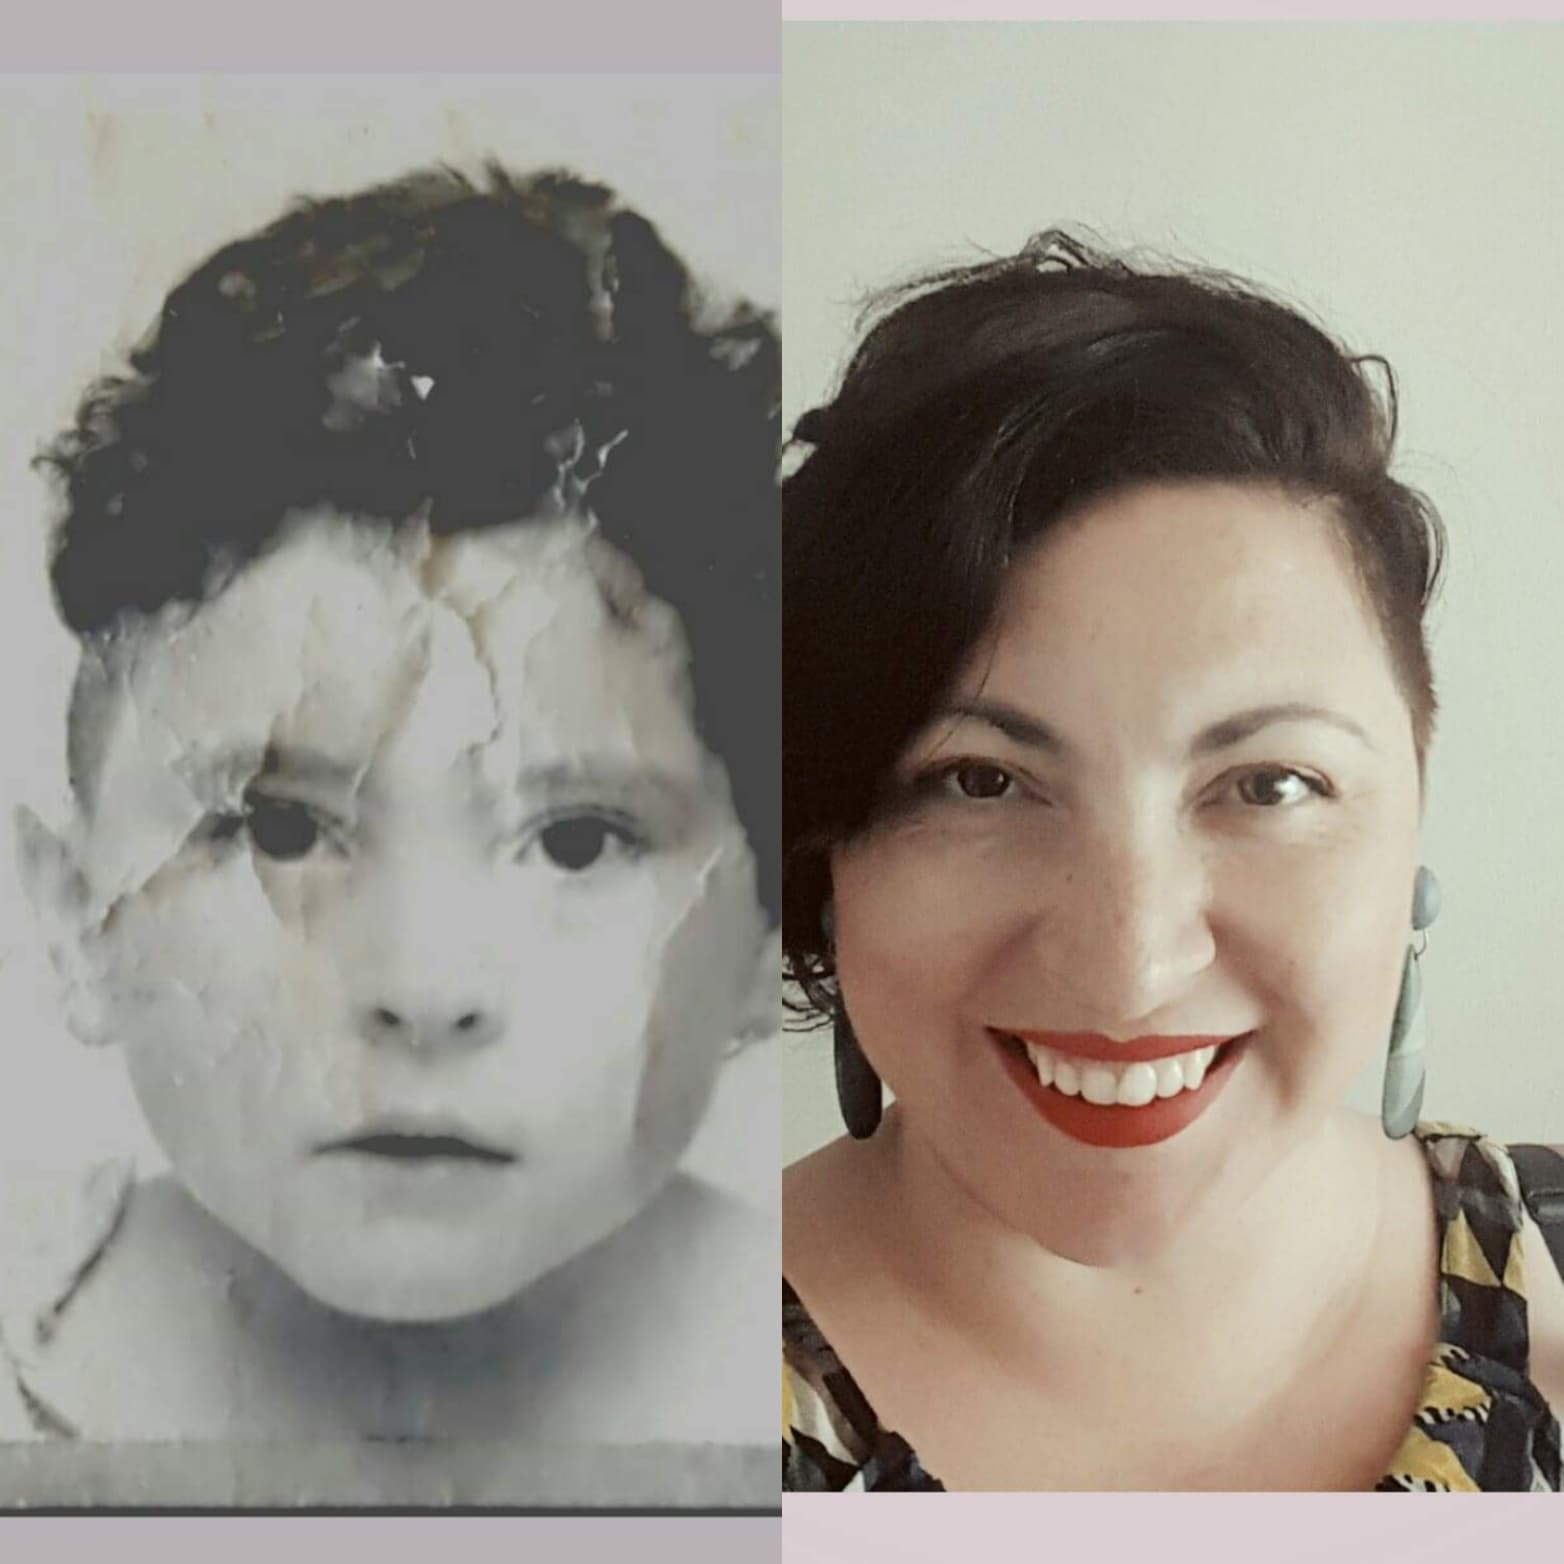 5-year-old ill self with shaved head, prepped and ready for surgery.  vs  happy adult self on the 30-something anniversary of said surgery.